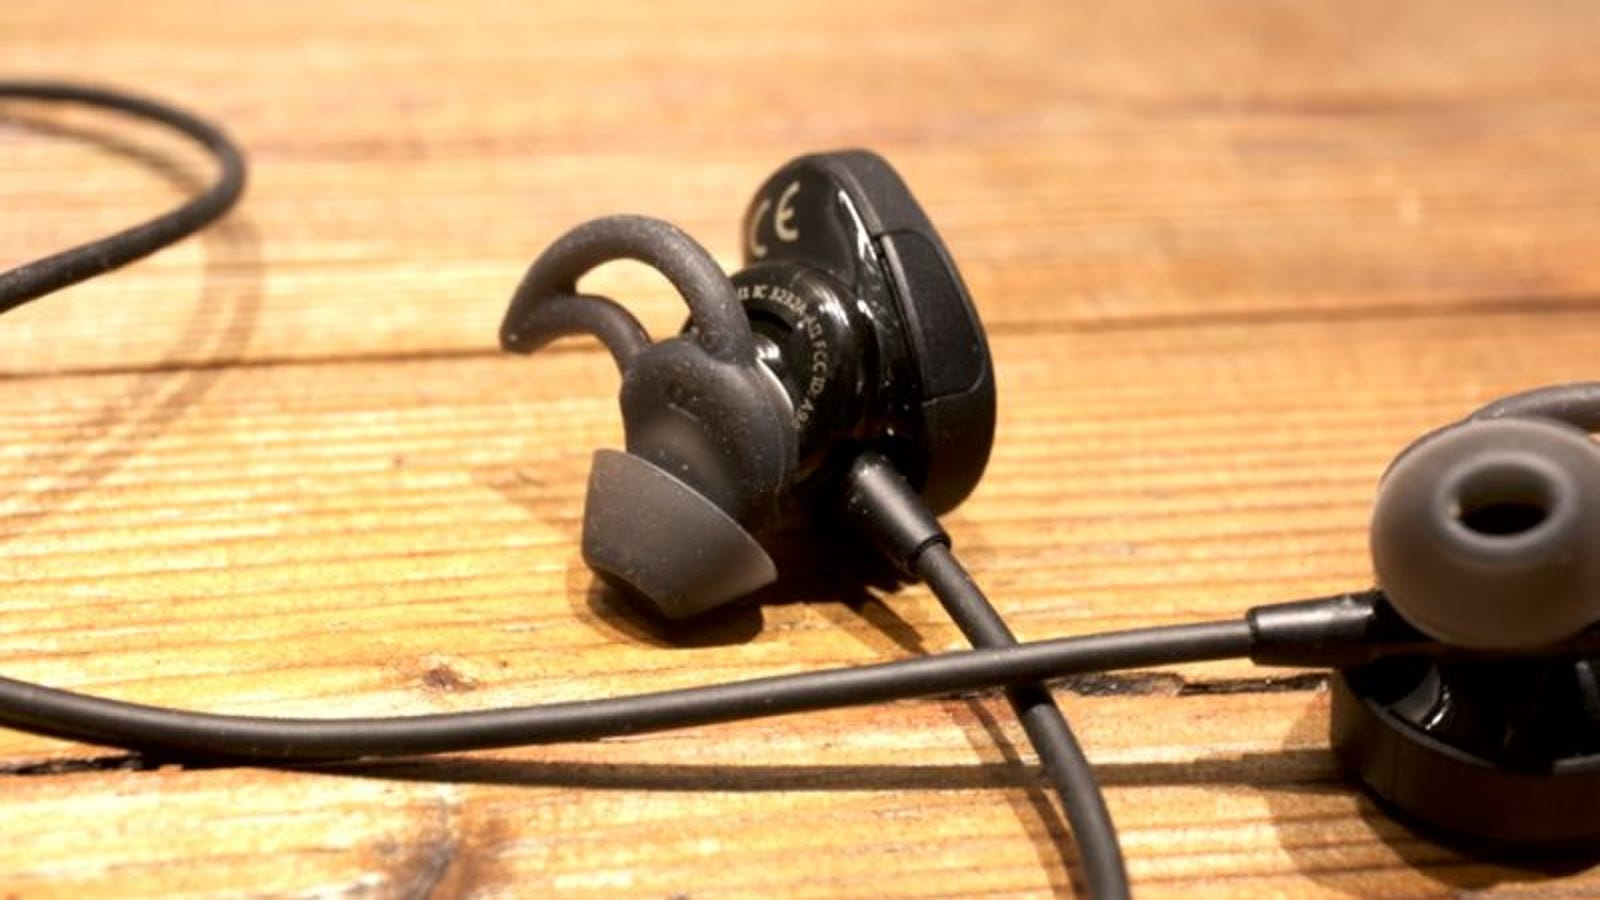 rose gold noise cancelling earbuds